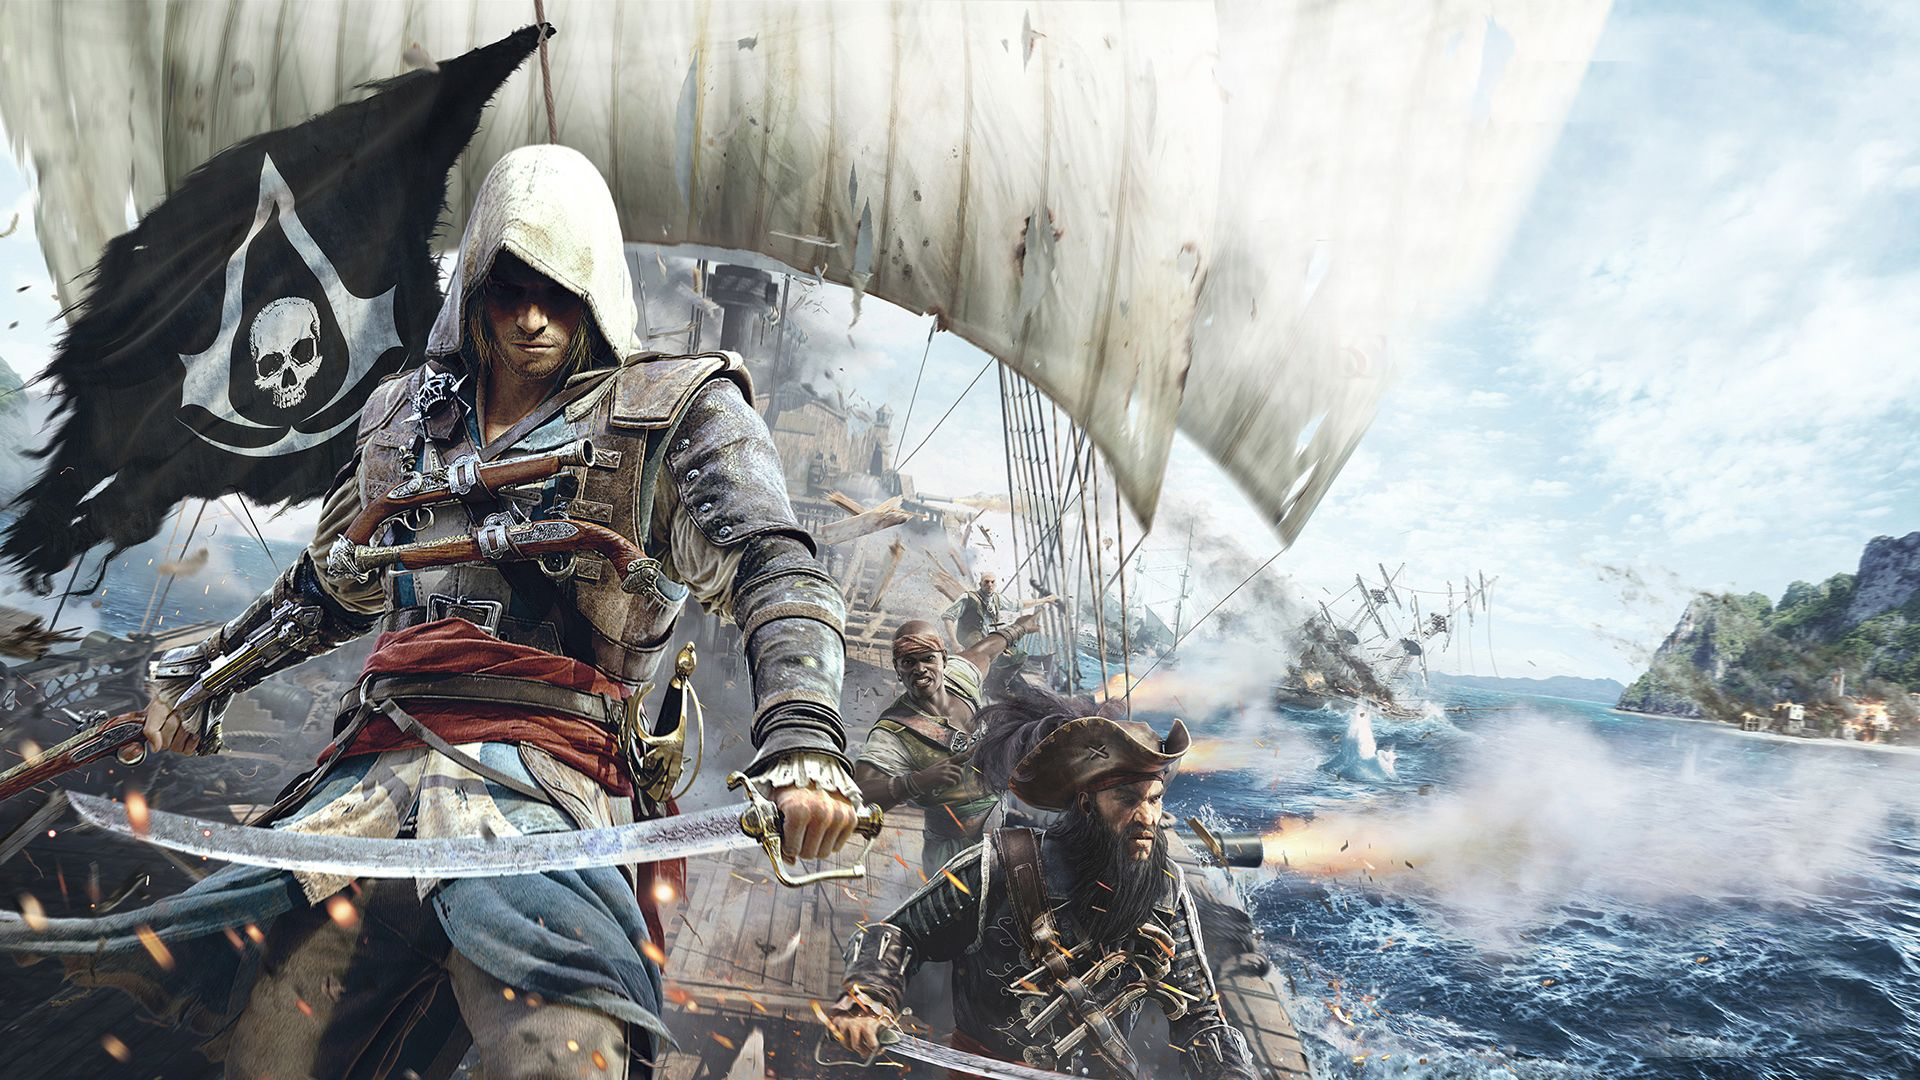 Wallpapers Assassins Creed 4 Black Flag Game Hd Assassins Creed Black Flag Assassin S Creed Wallpaper Assassin S Creed Black